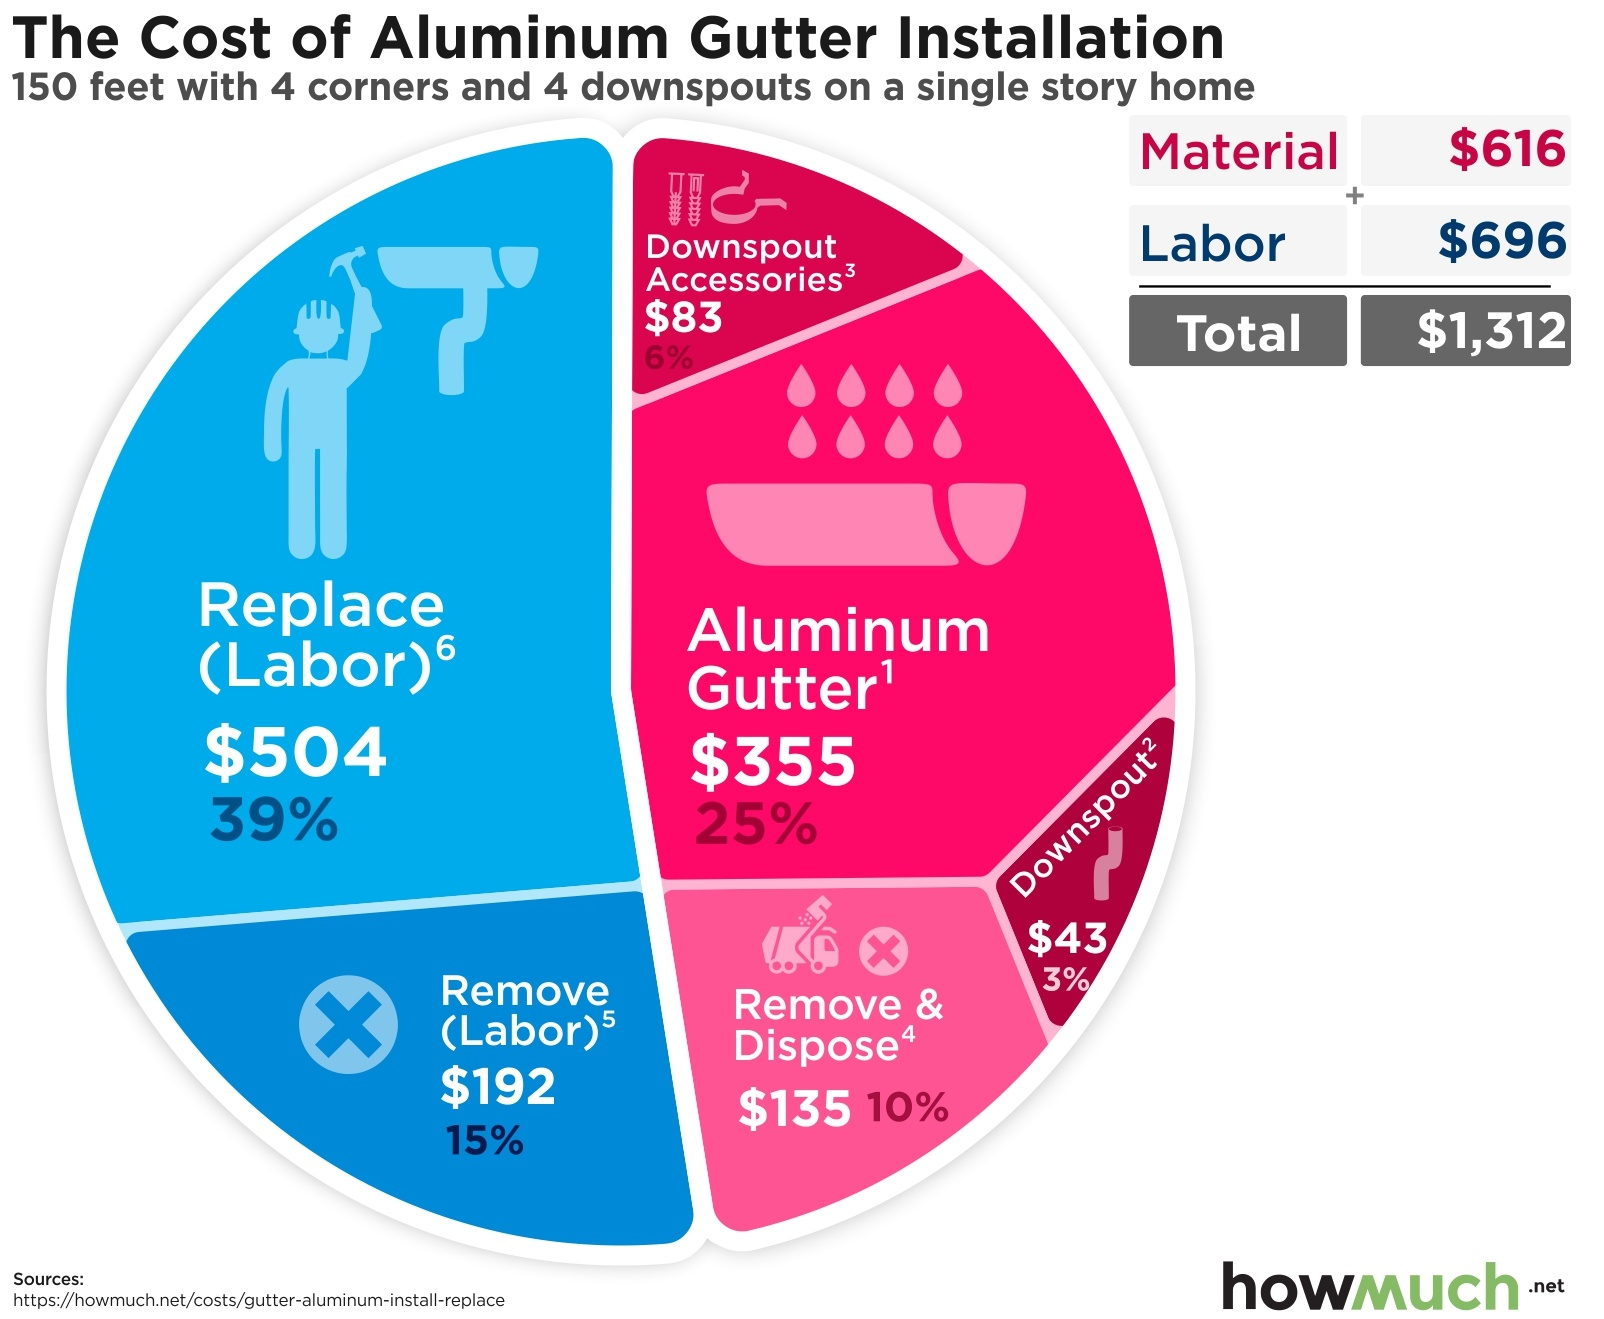 The Cost of Aluminum Gutter Installation